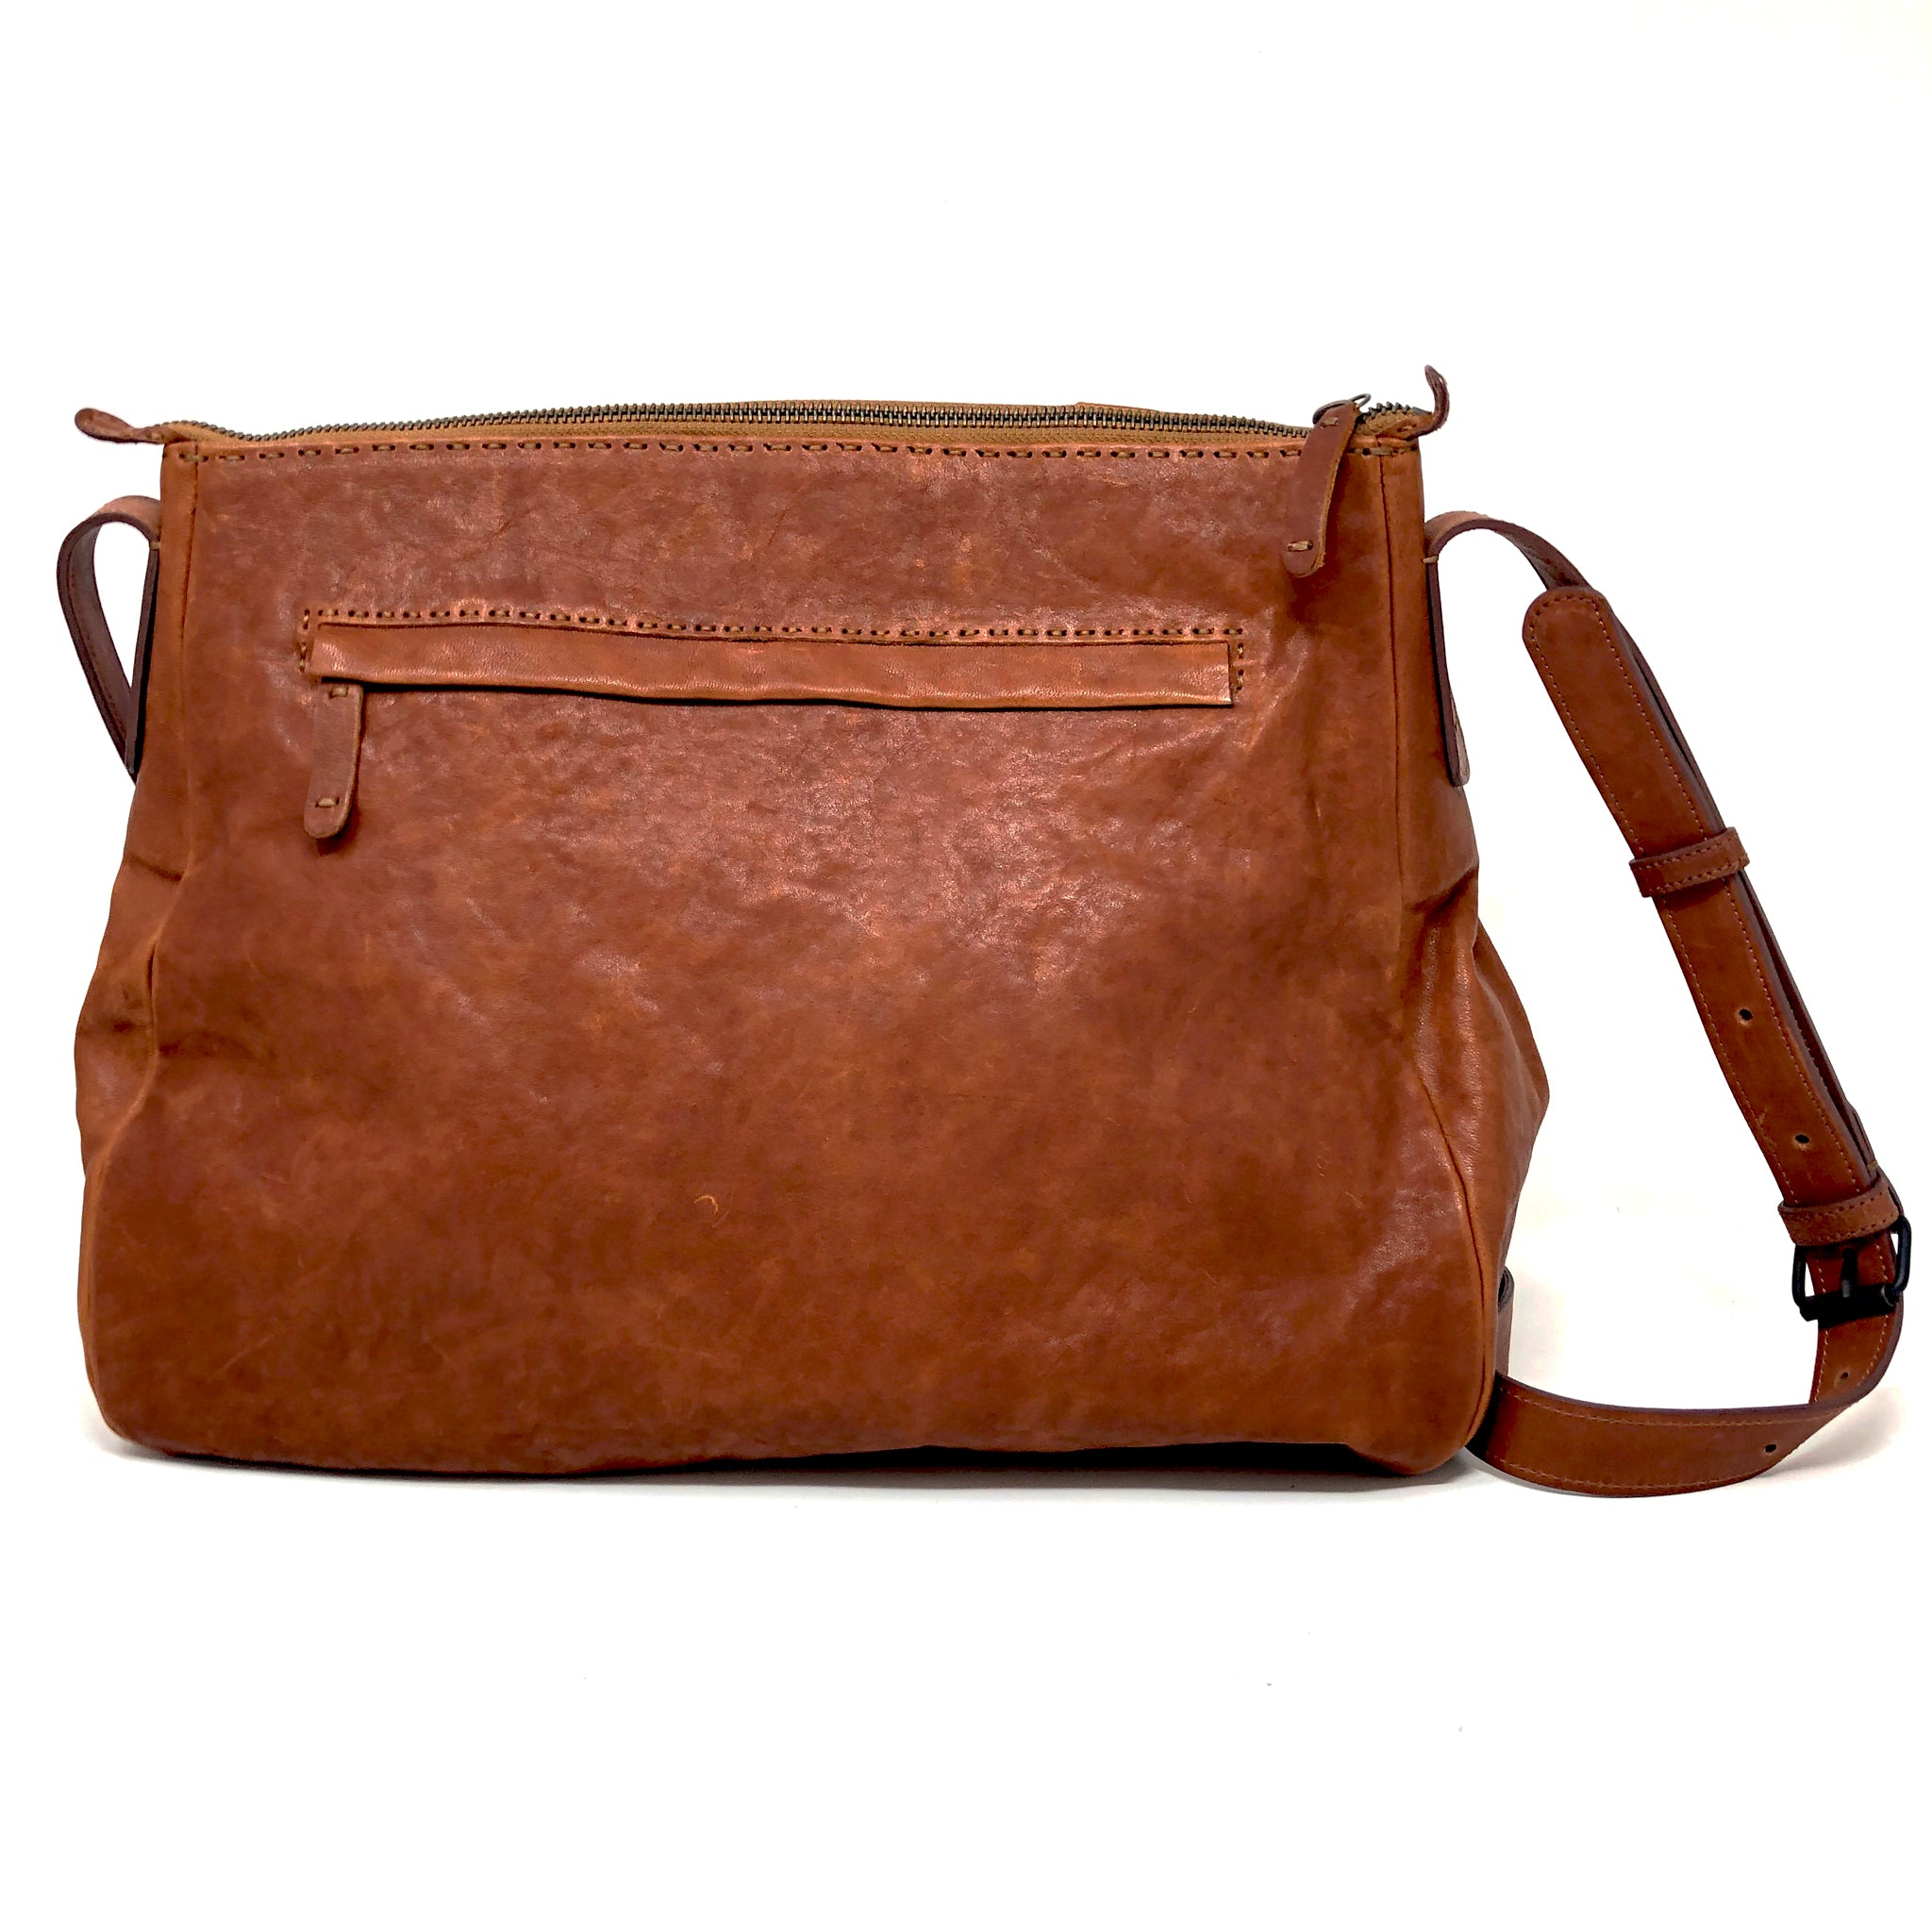 Bodrum Leather Bag